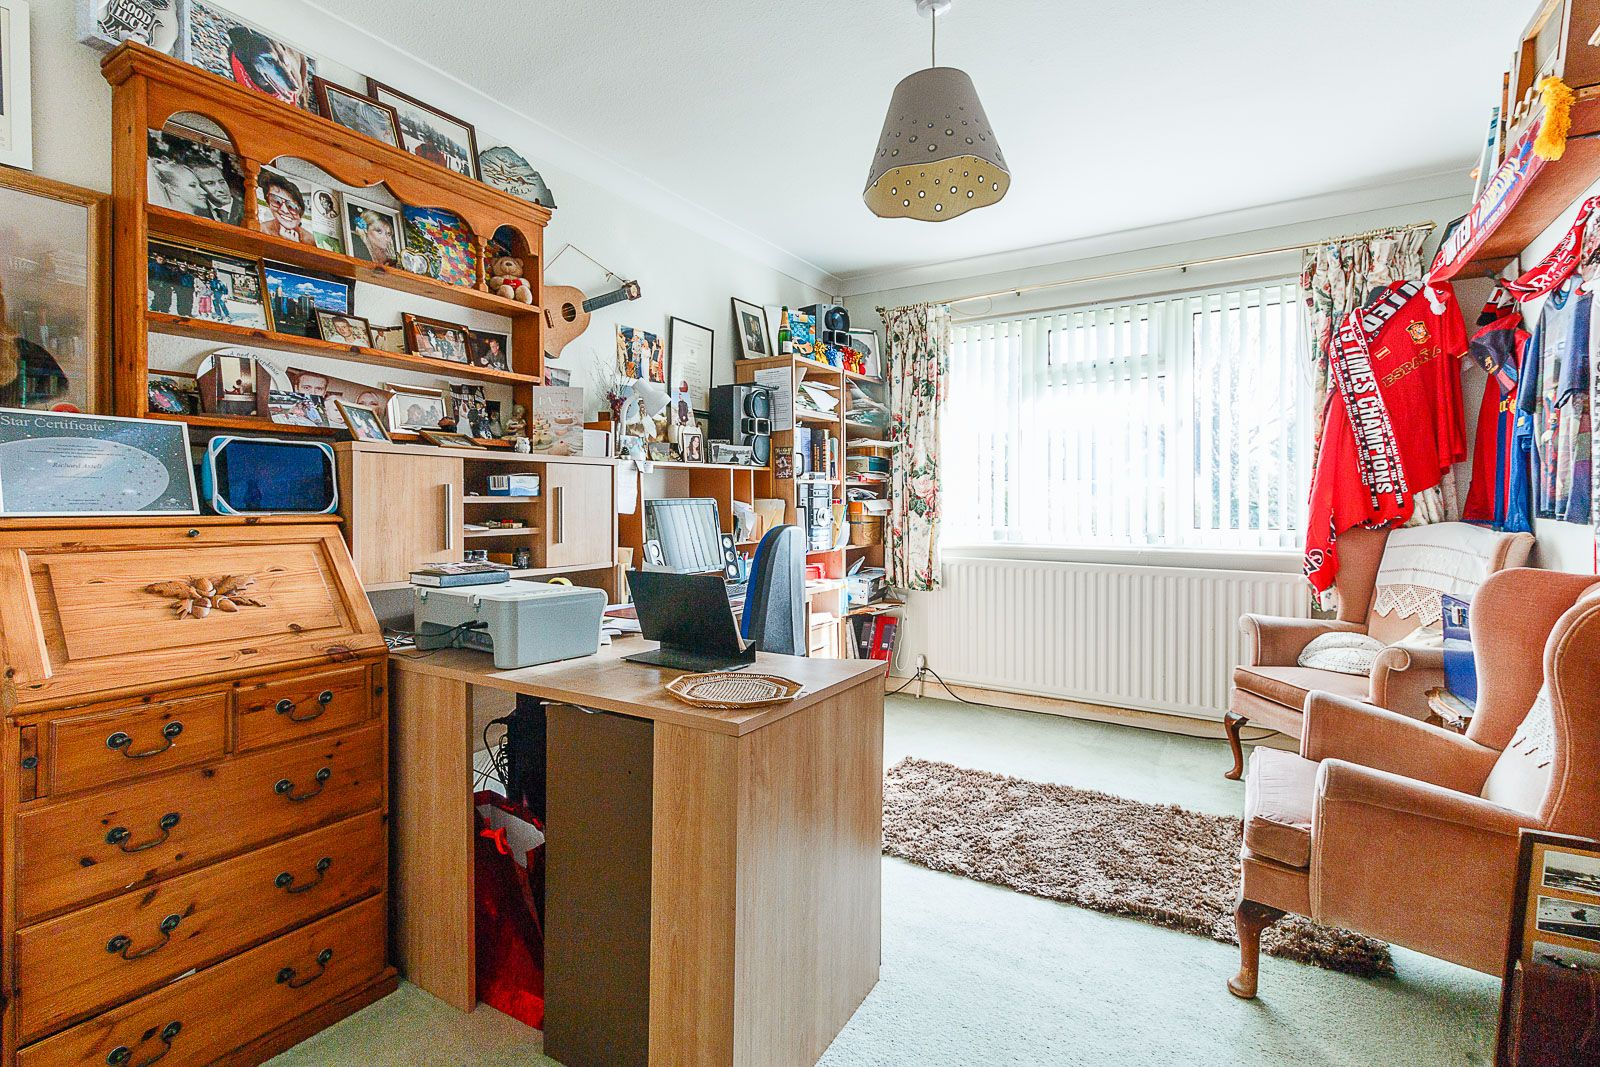 3 bed Bungalow for sale in East Preston - Bedroom (Property Image 9)